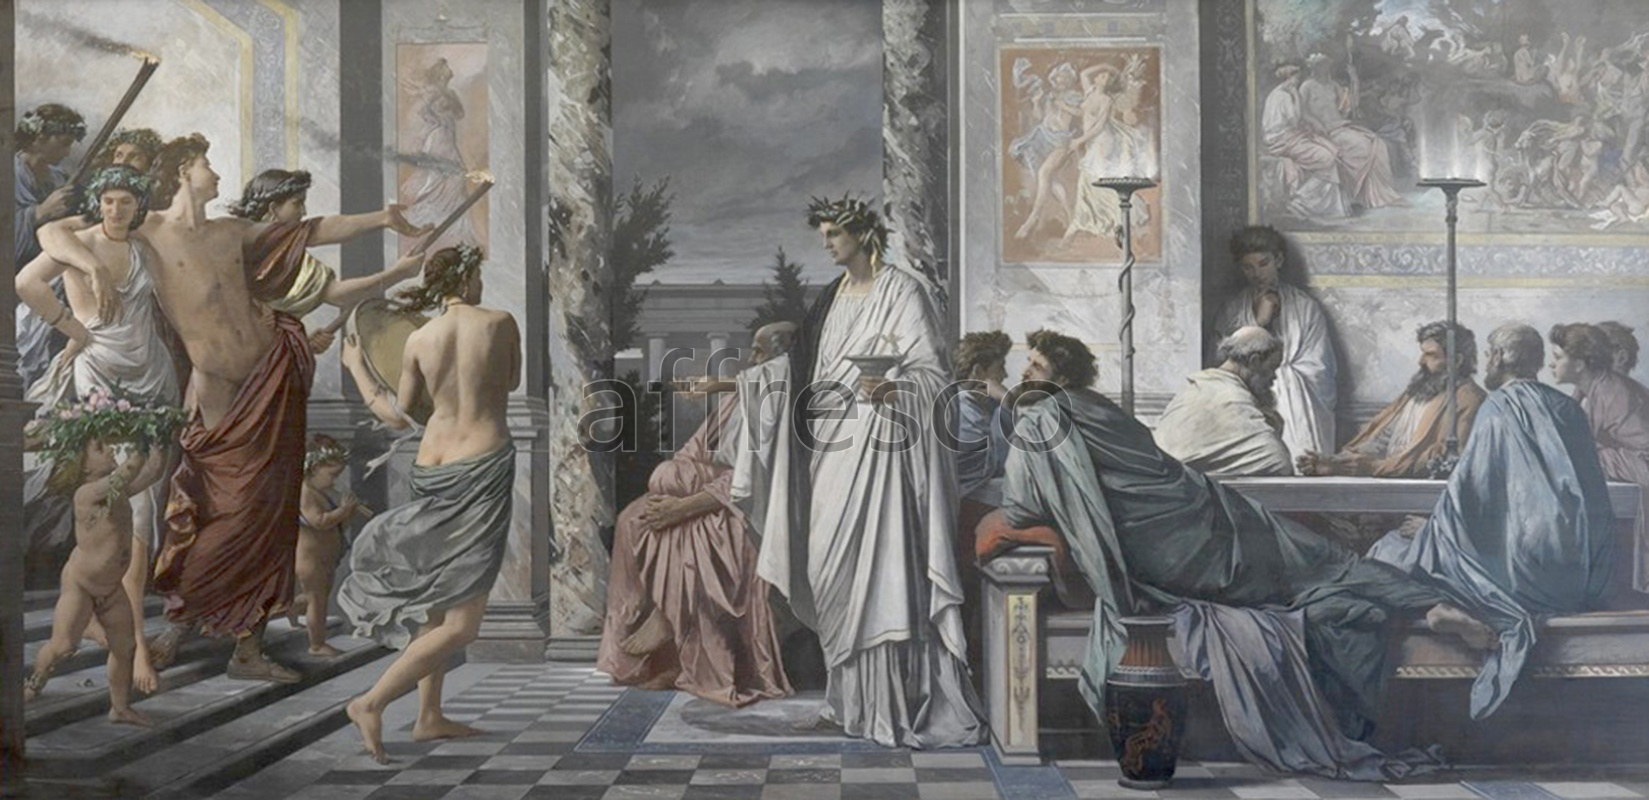 Classical antiquity themes | Platos Symposium Anselm Feuerbach | Affresco Factory